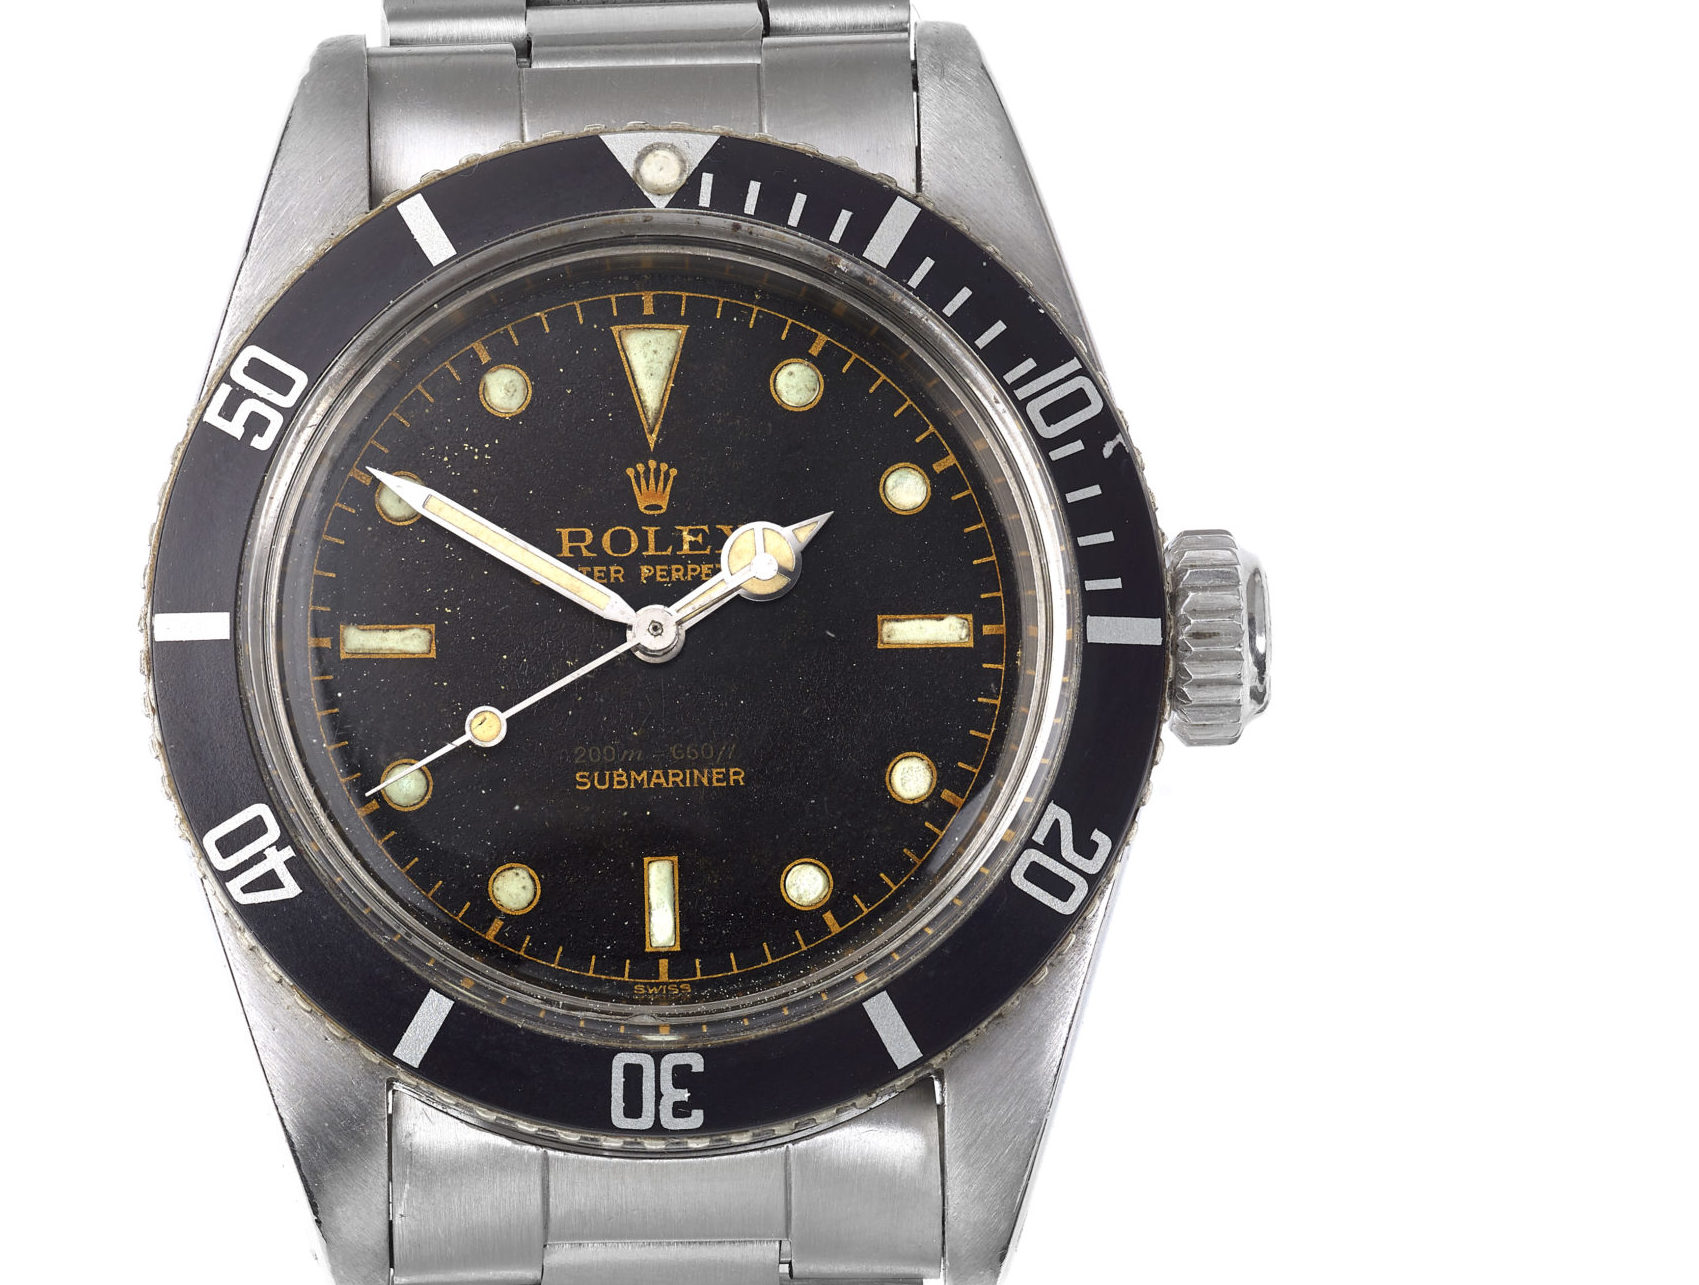 1958 007 Submariner Goes Under The Hammer At Fellows Watchpro